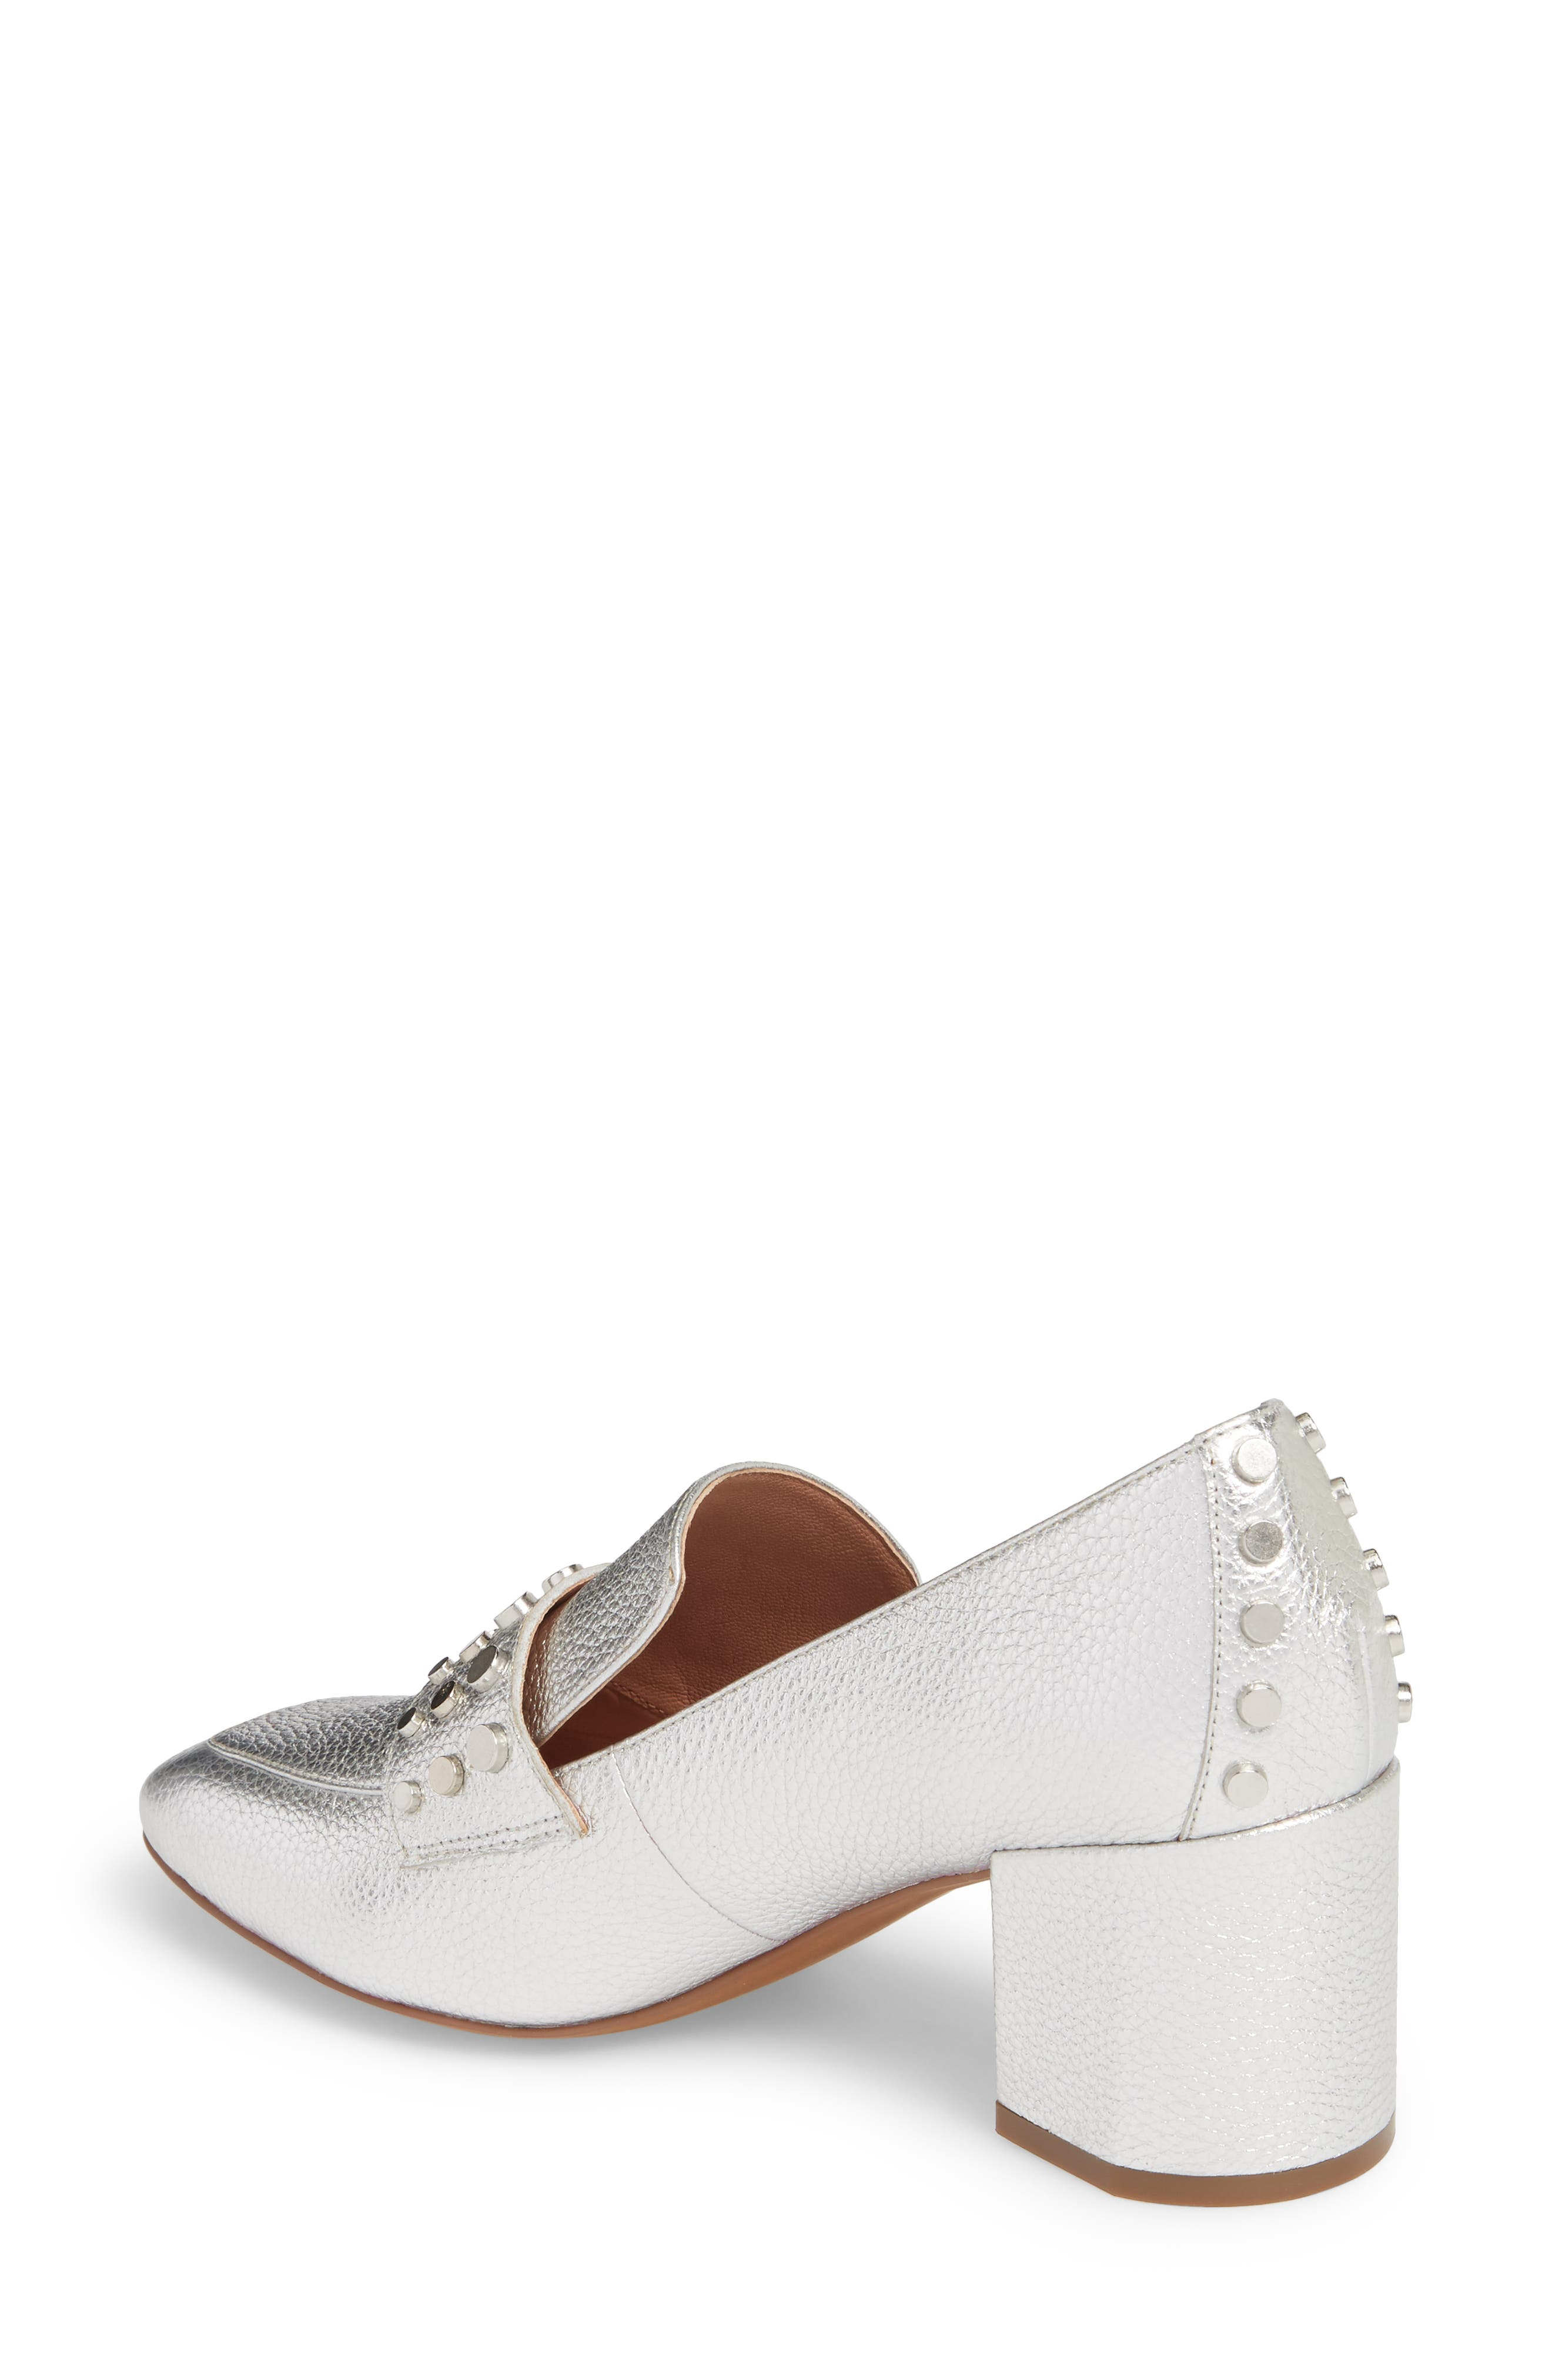 Luca Studded Pump,                             Alternate thumbnail 2, color,                             Silver Leather